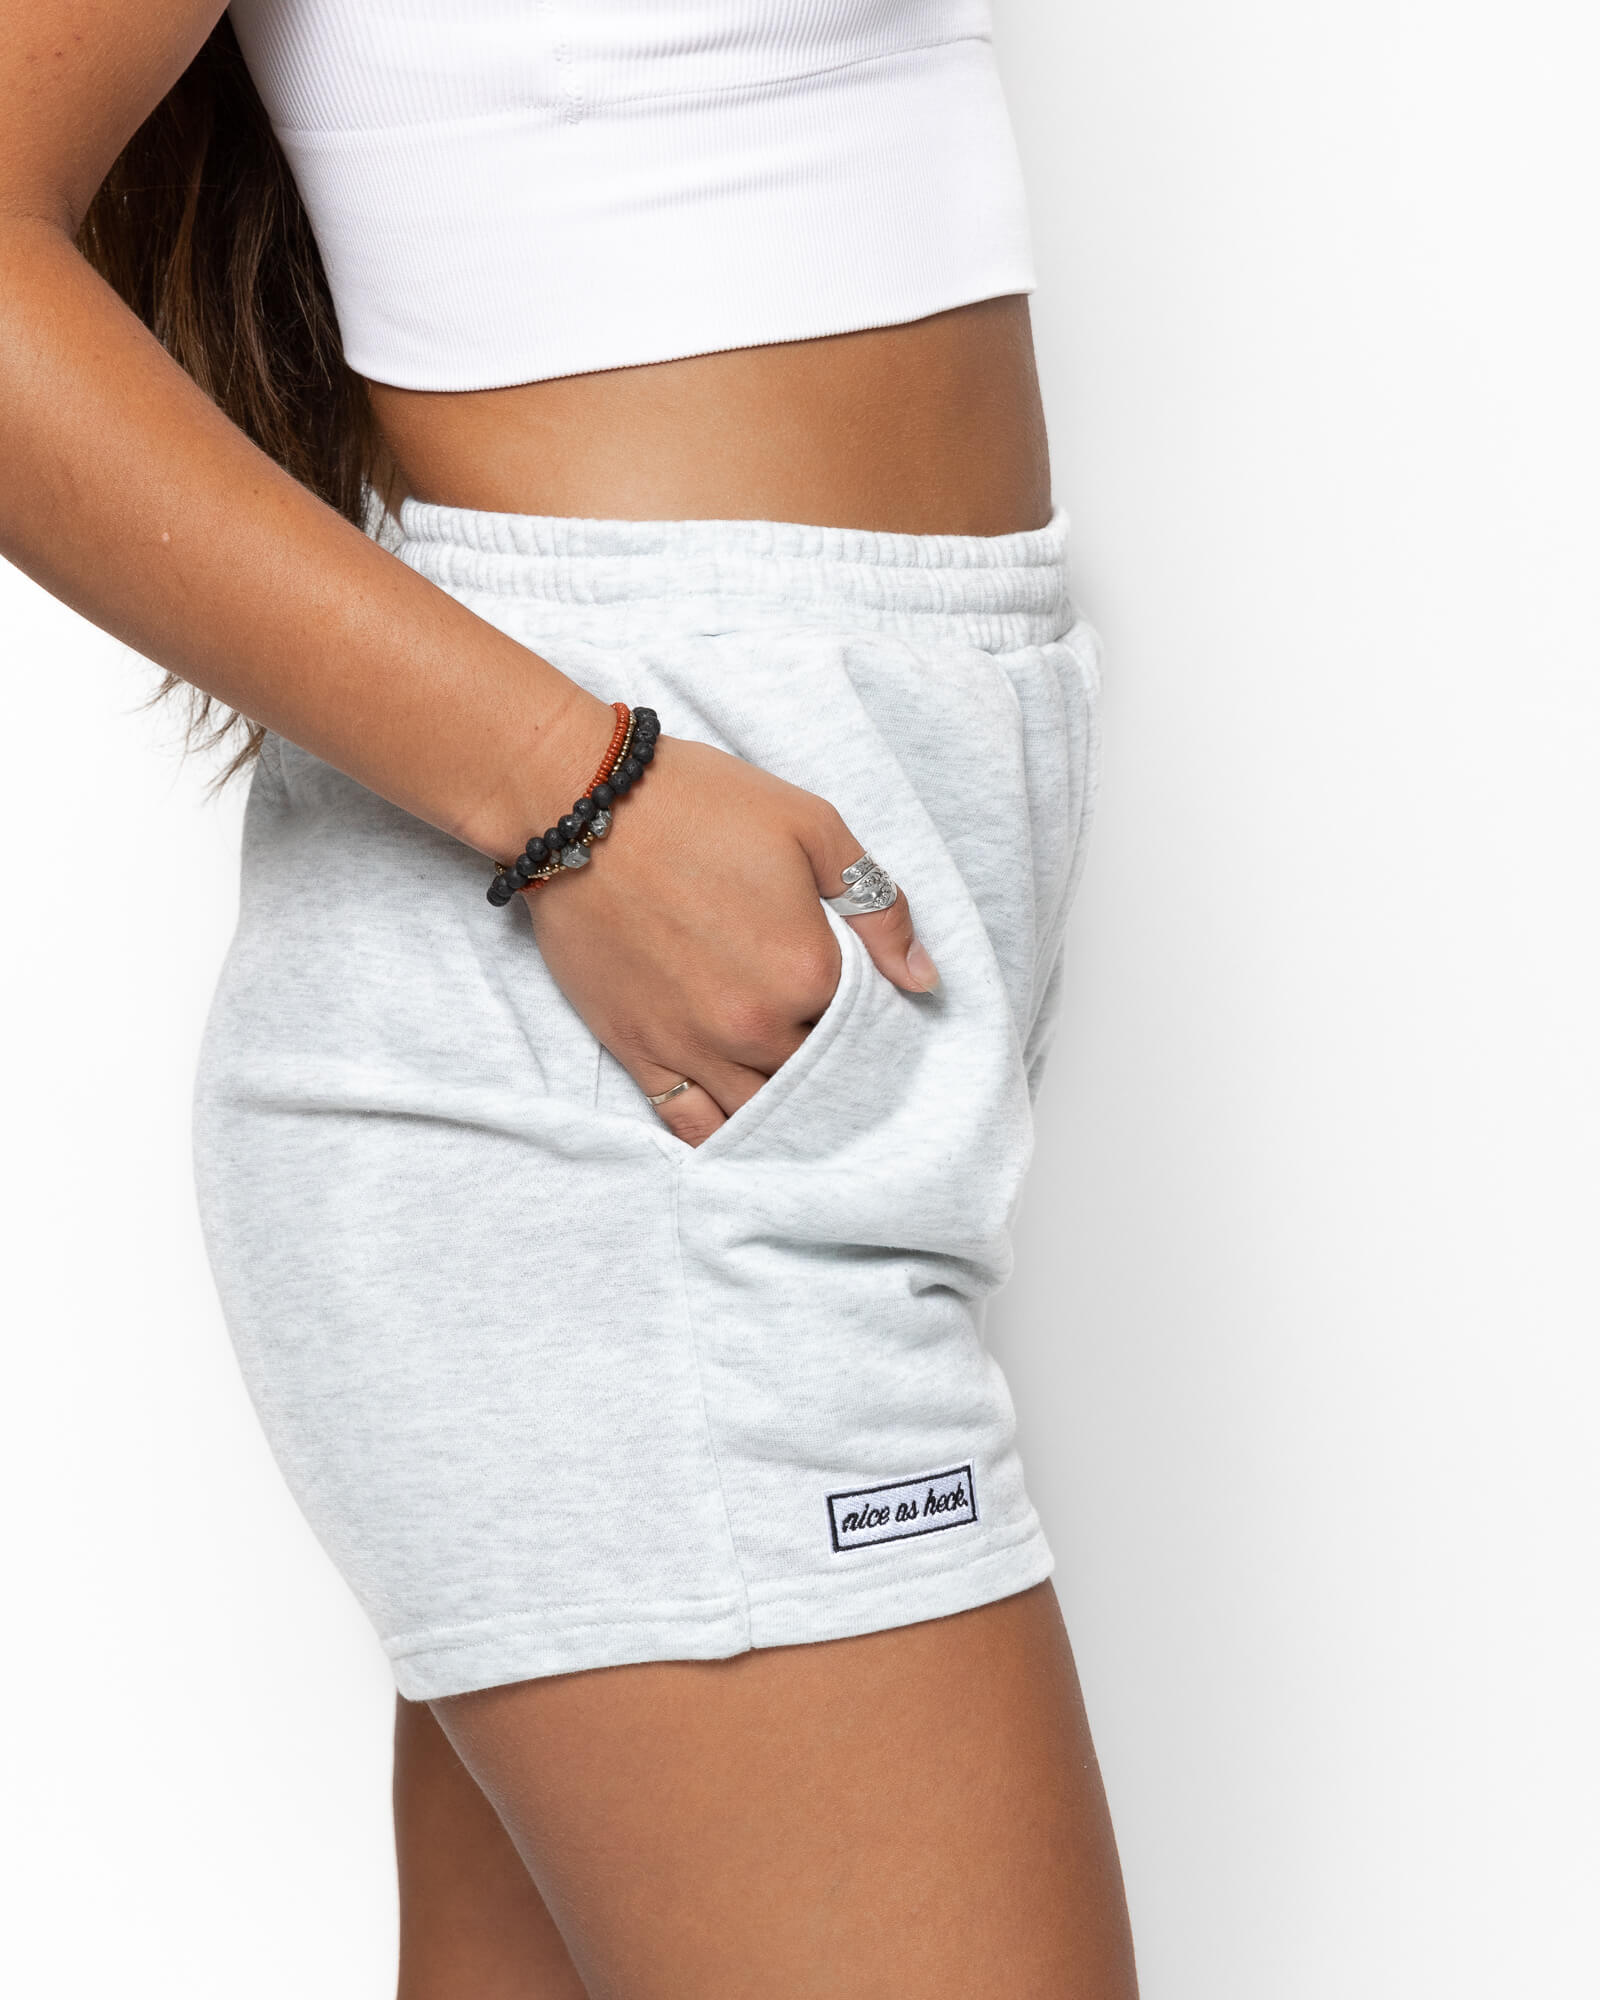 close up side view of a girl wearing the shorts with her hands in her pockets